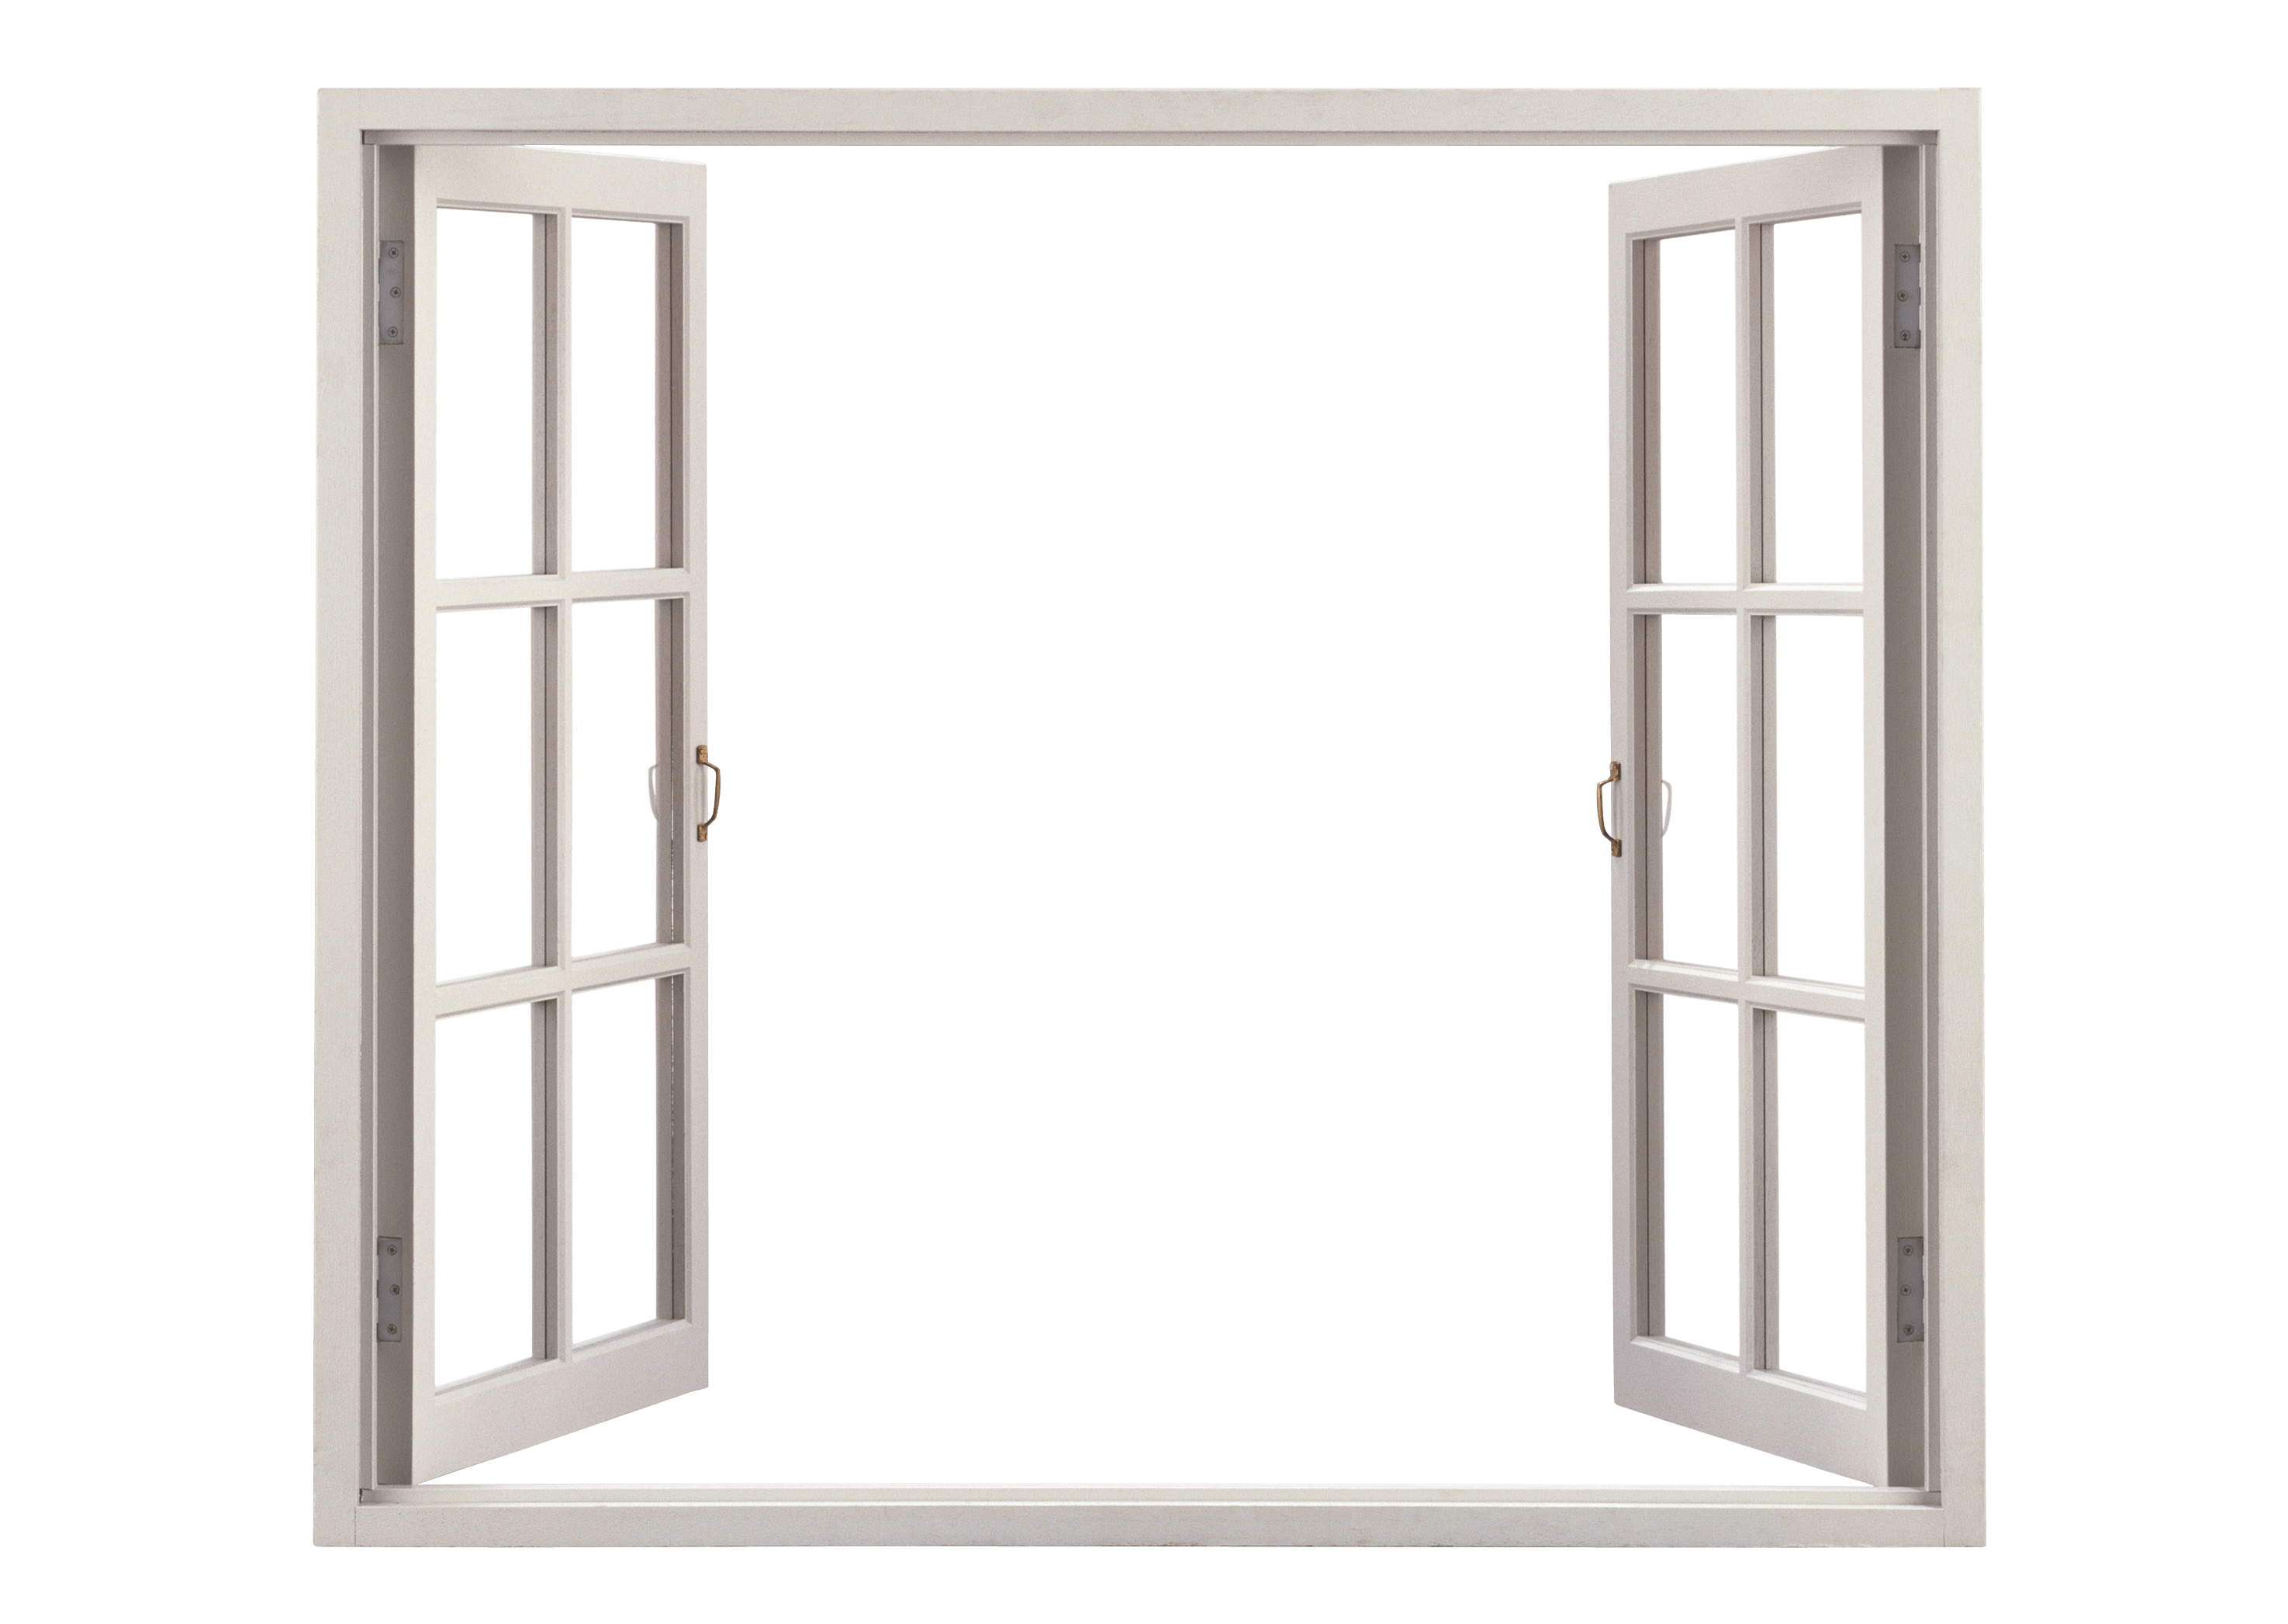 Open Window transparent PNG